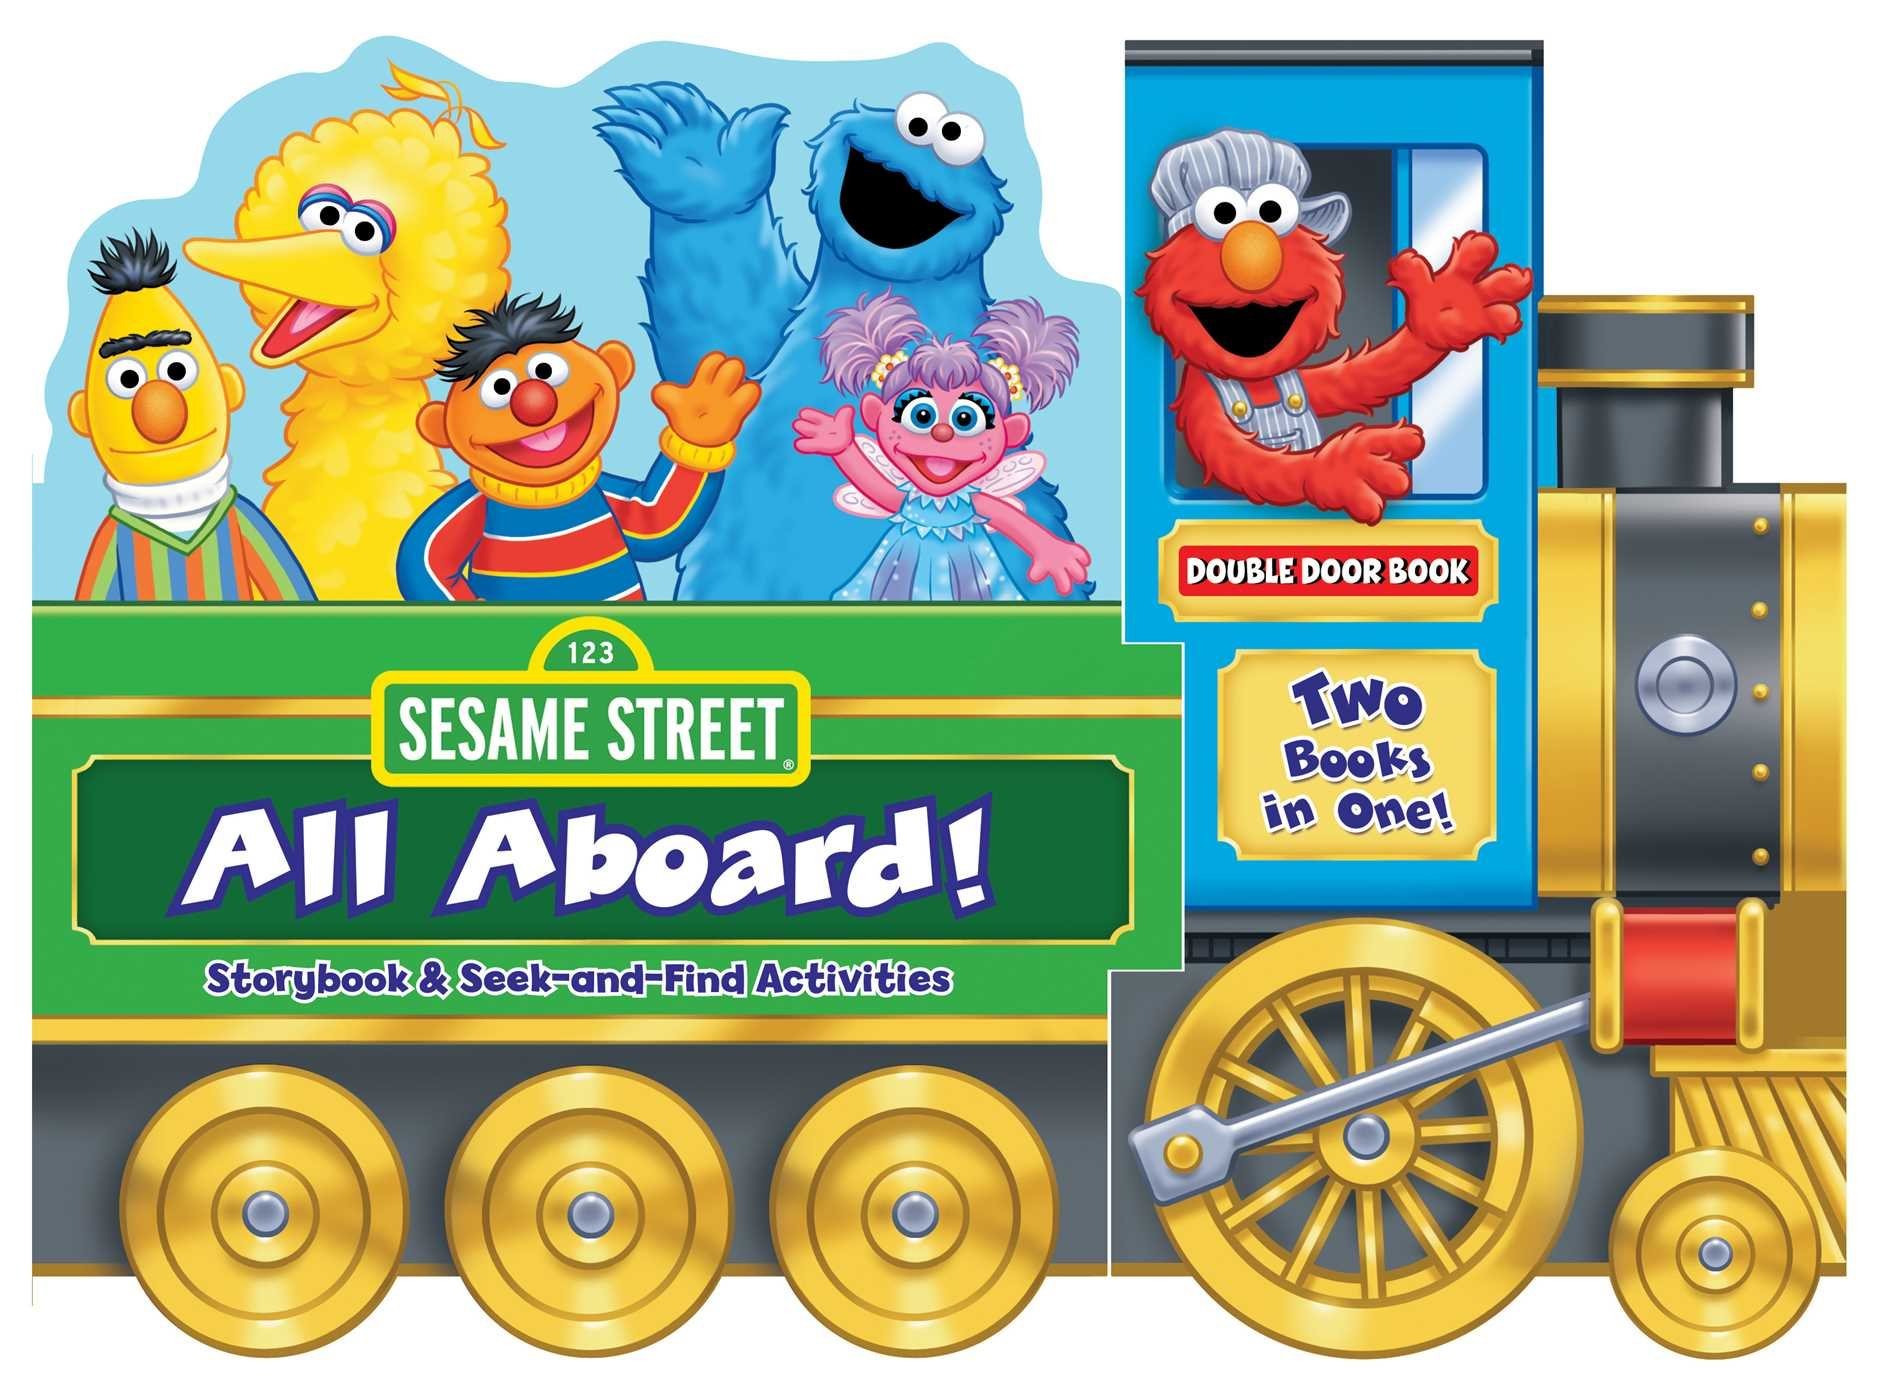 Sesame Street: All Aboard!: Storybook & Seek-and-Find Activities PDF